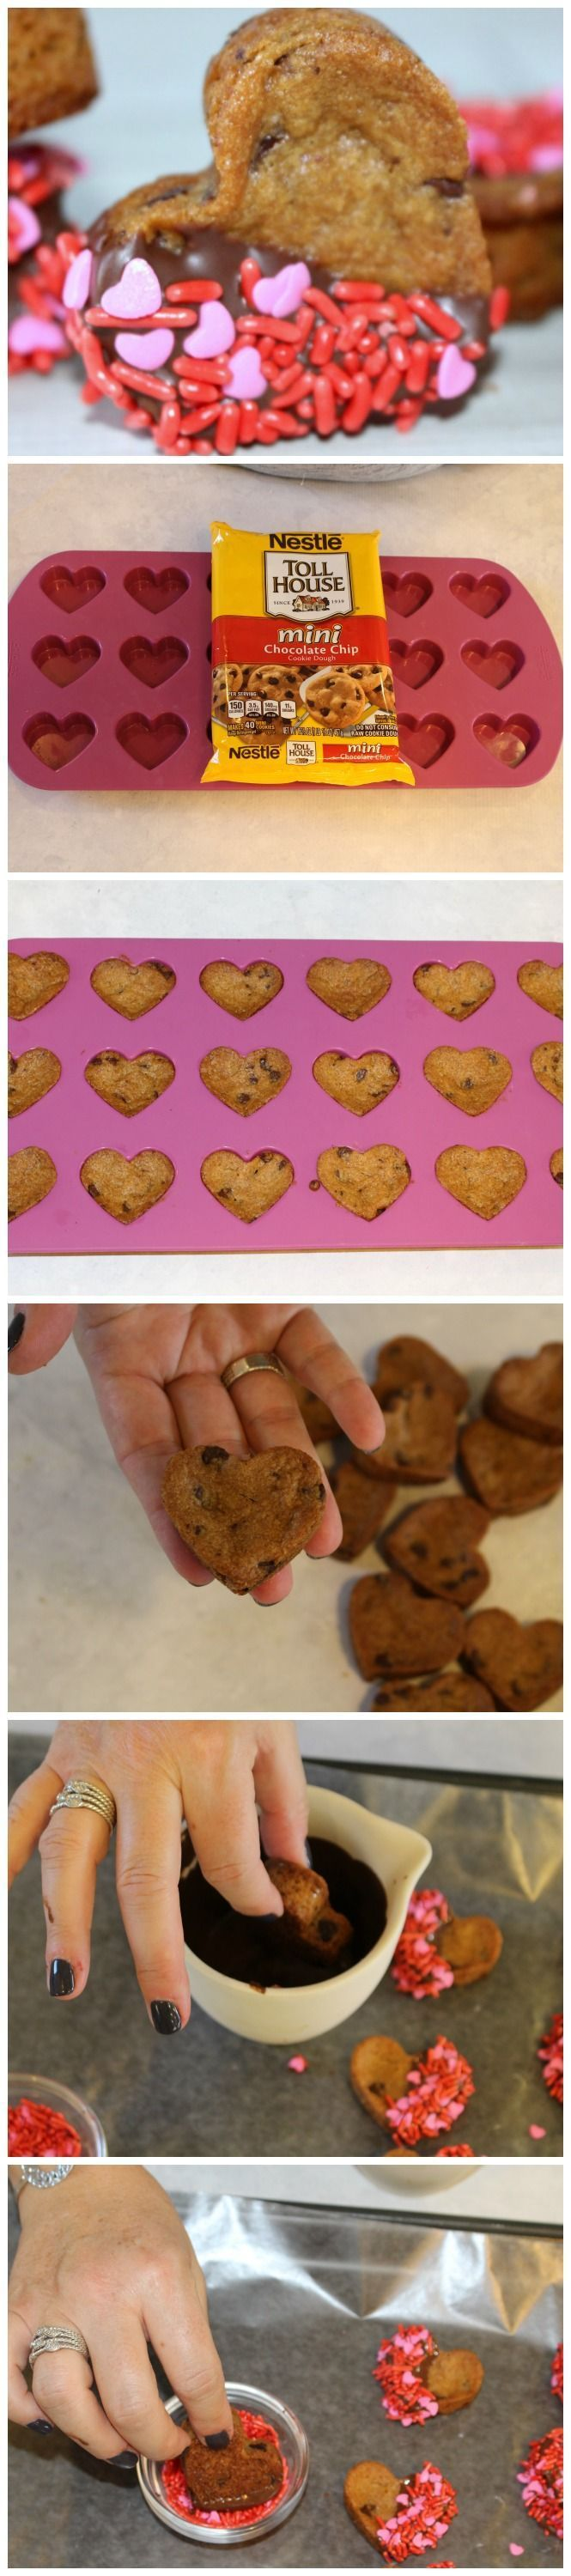 How to make chocolate chip heart cookies for Valentines Day